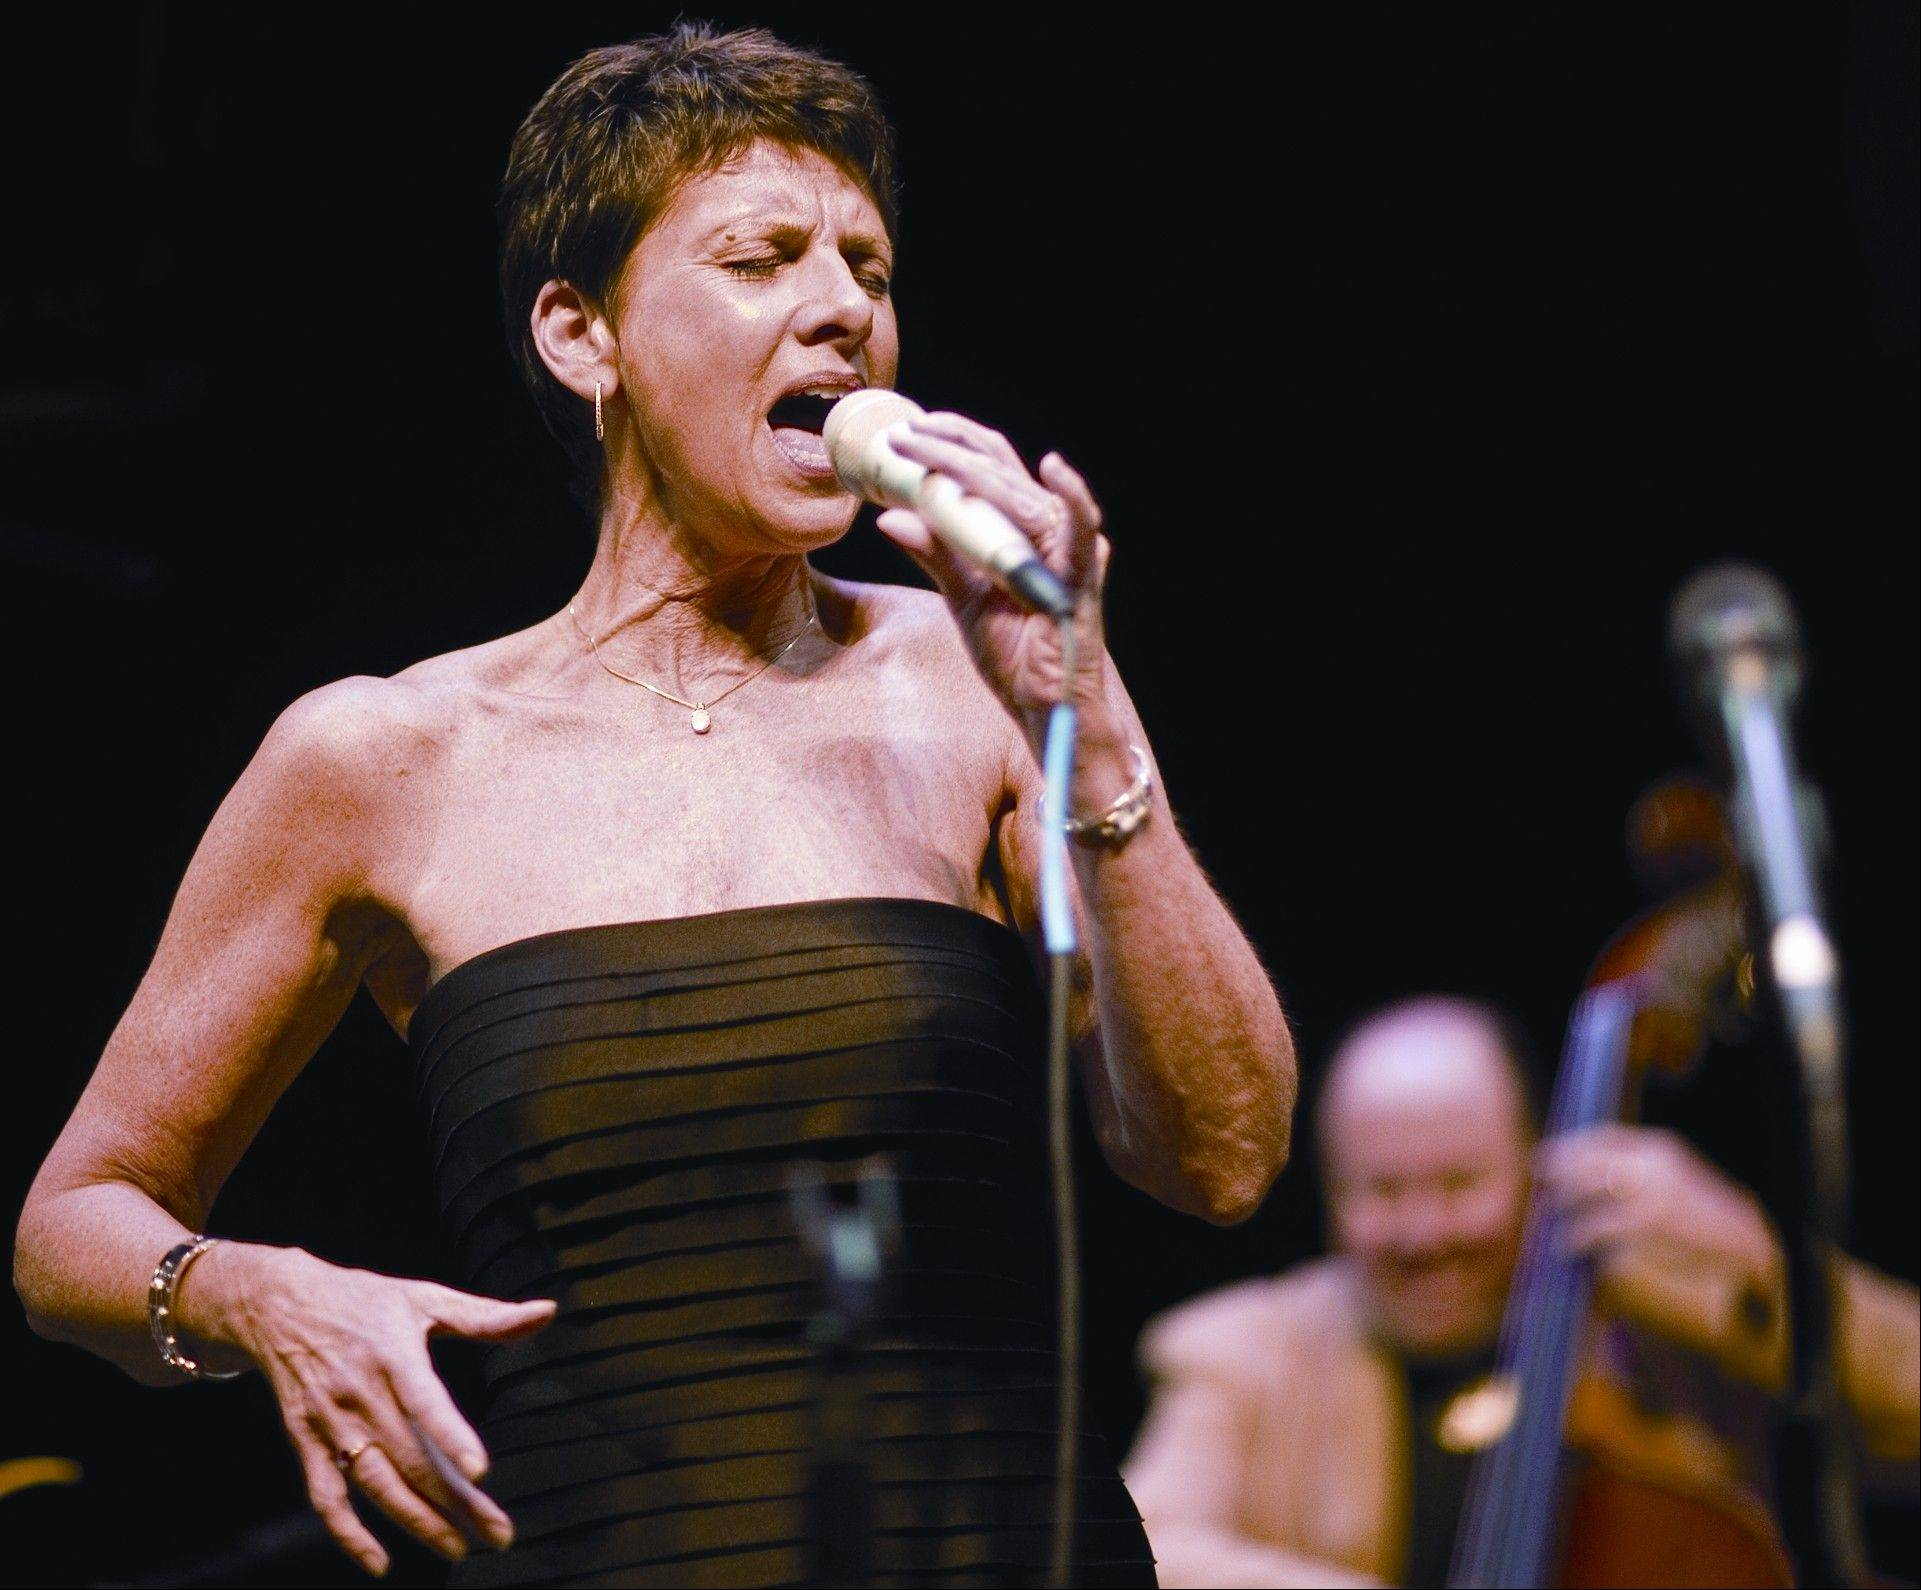 Jazz singer Janice Borla is one of the headlining acts of the Hot Jazz — 6 Cool Nites series at North Central College's Meiley-Swallow Hall.